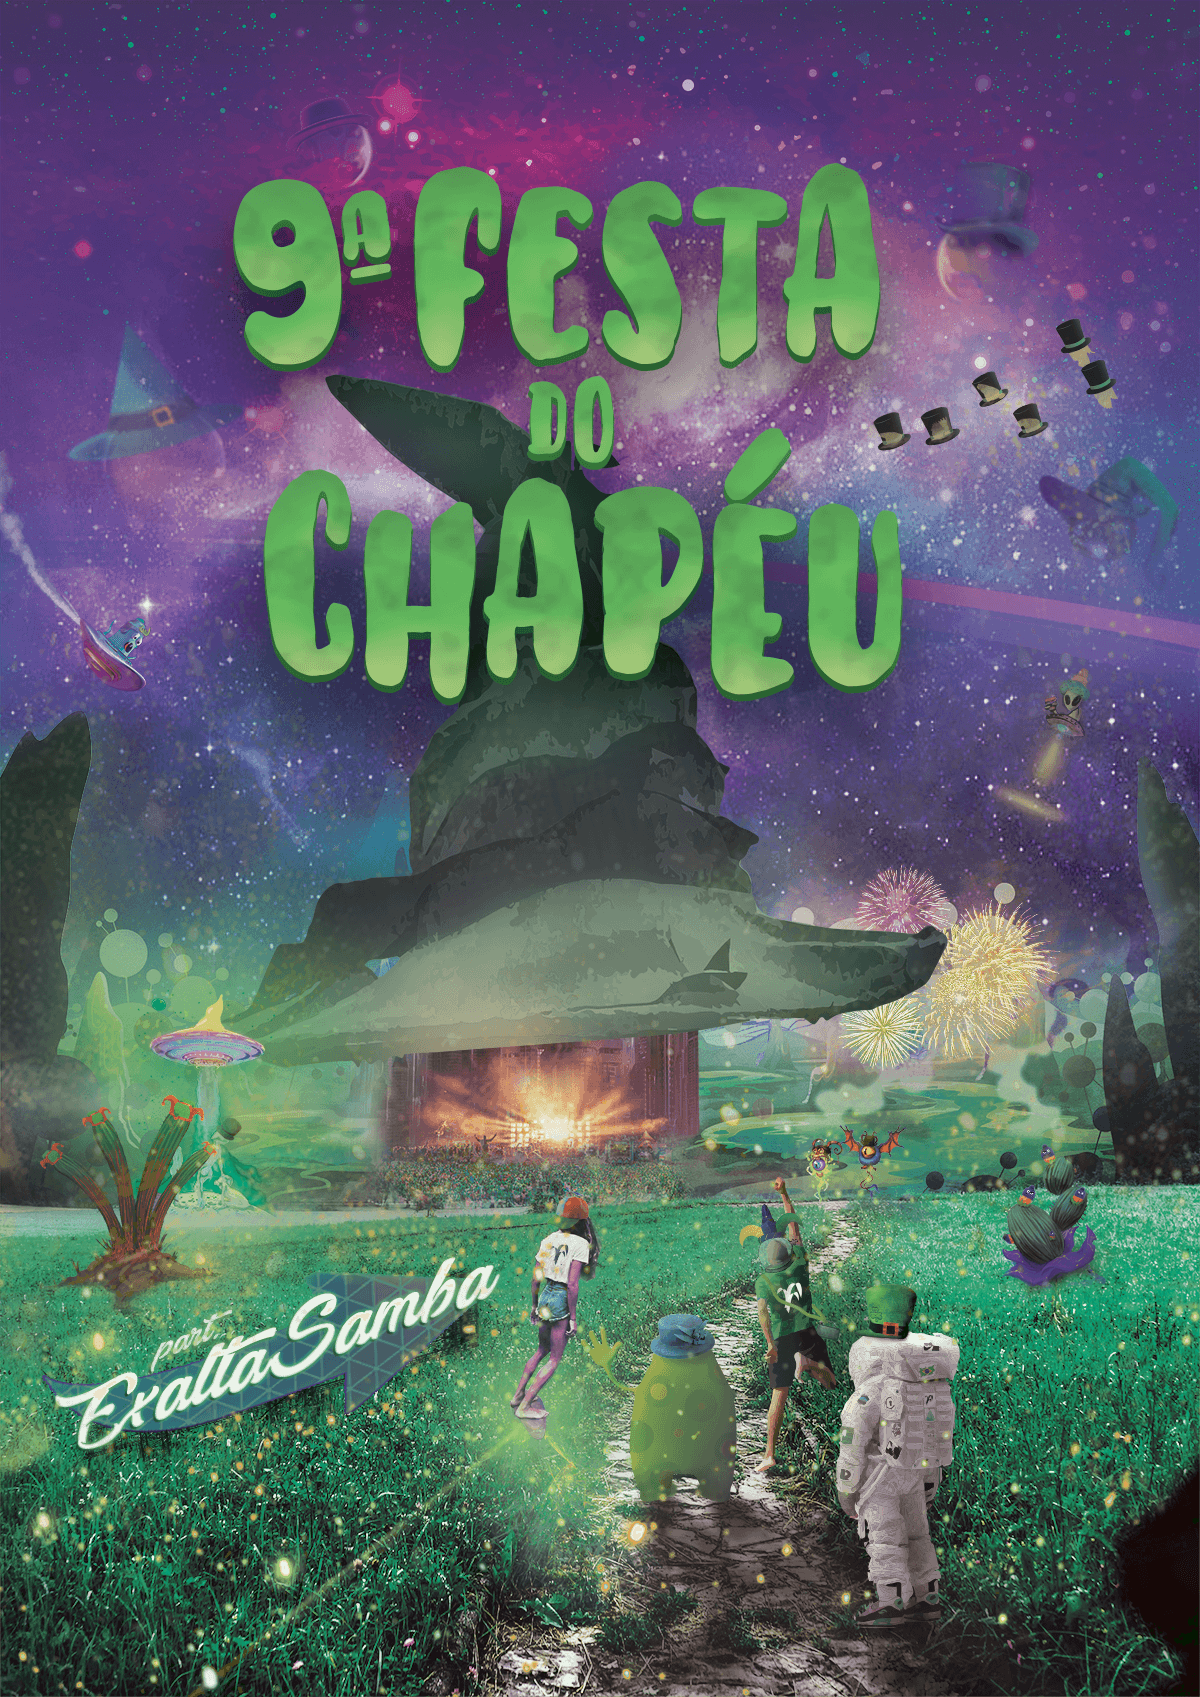 Festa do Chapeu 2018 - Full Event Branding